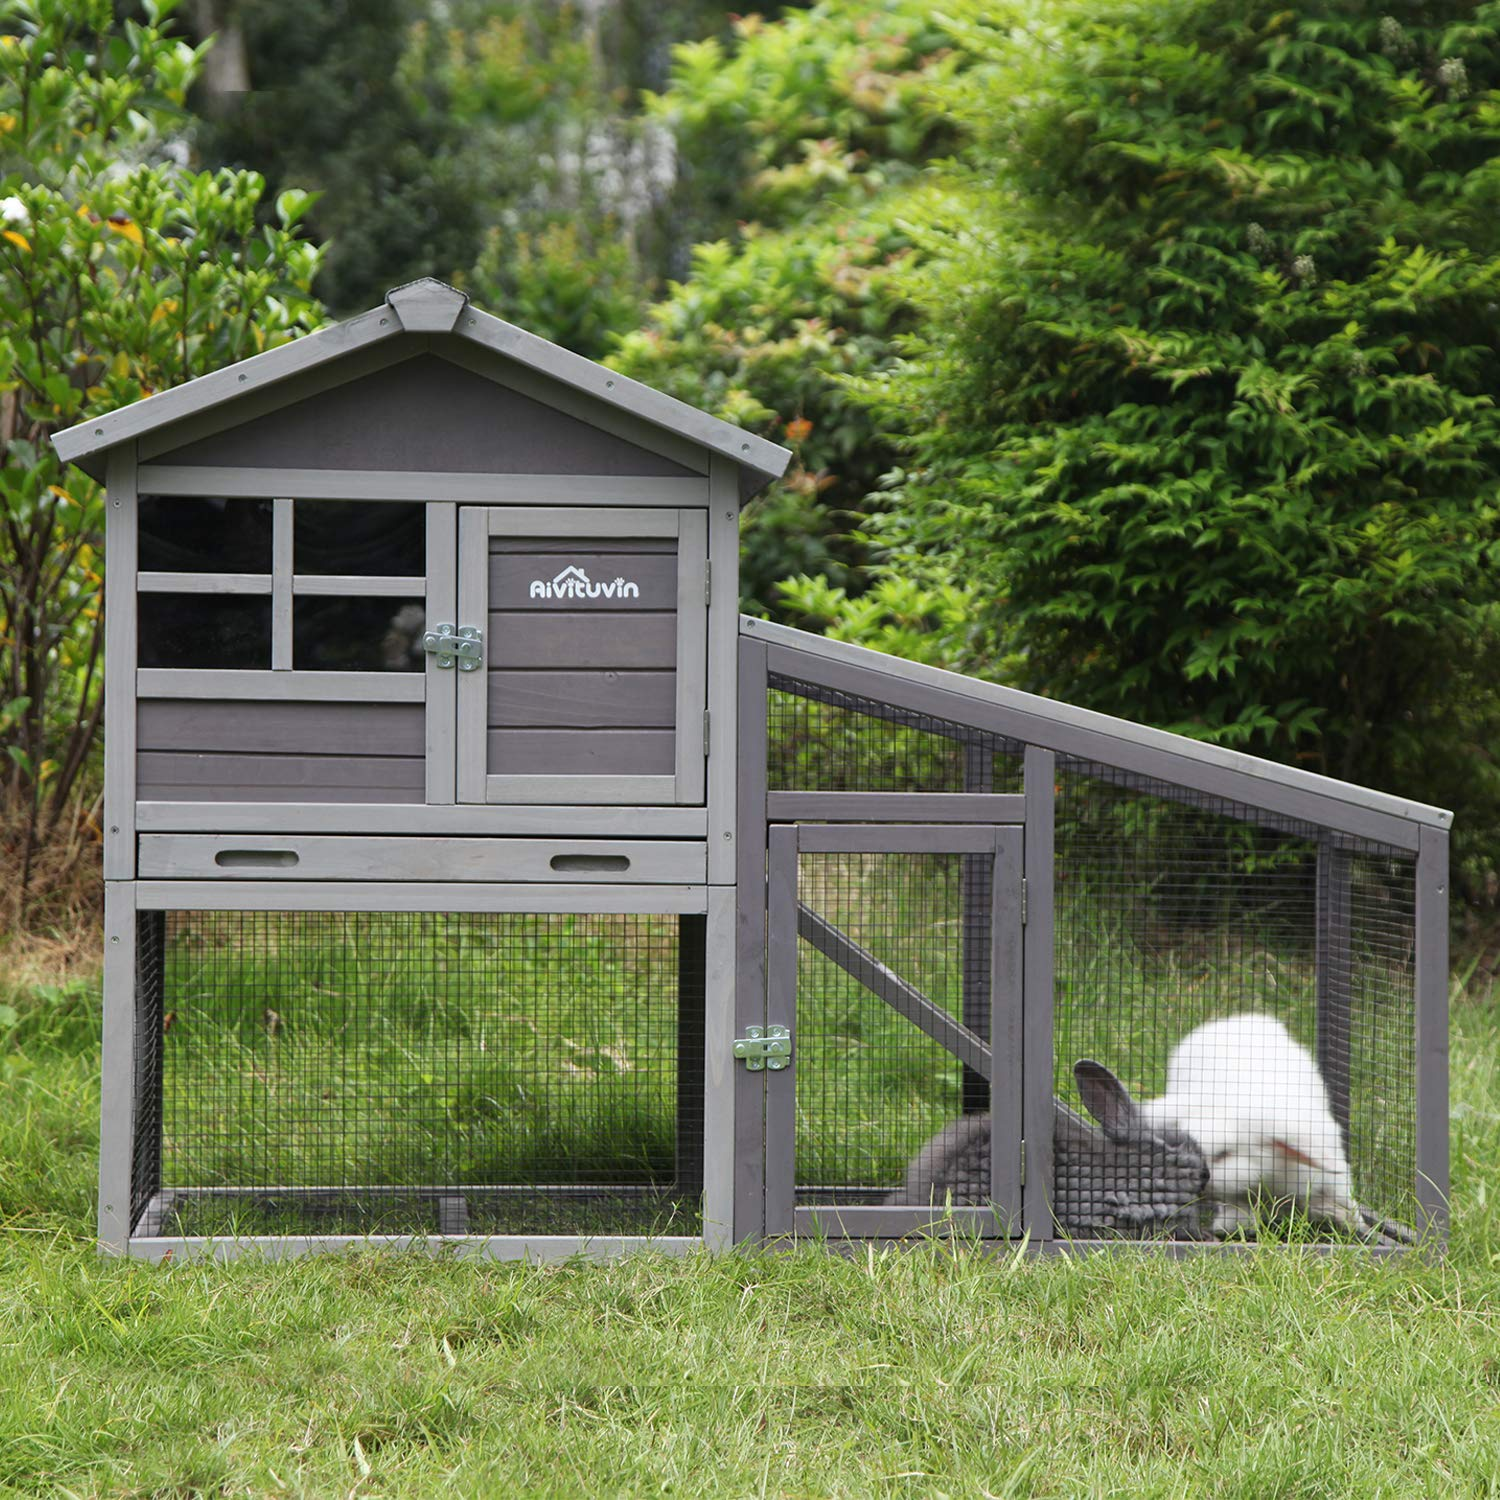 Aivituvin Chicken Coop Indoor and Outdoor,Rabbit Hutch with Removable Bottom Wire Mesh & PVC Layer,Deeper No LeakageTray,Wooden Hen House with Nesting Box,UV Panel by Aivituvin (Image #6)